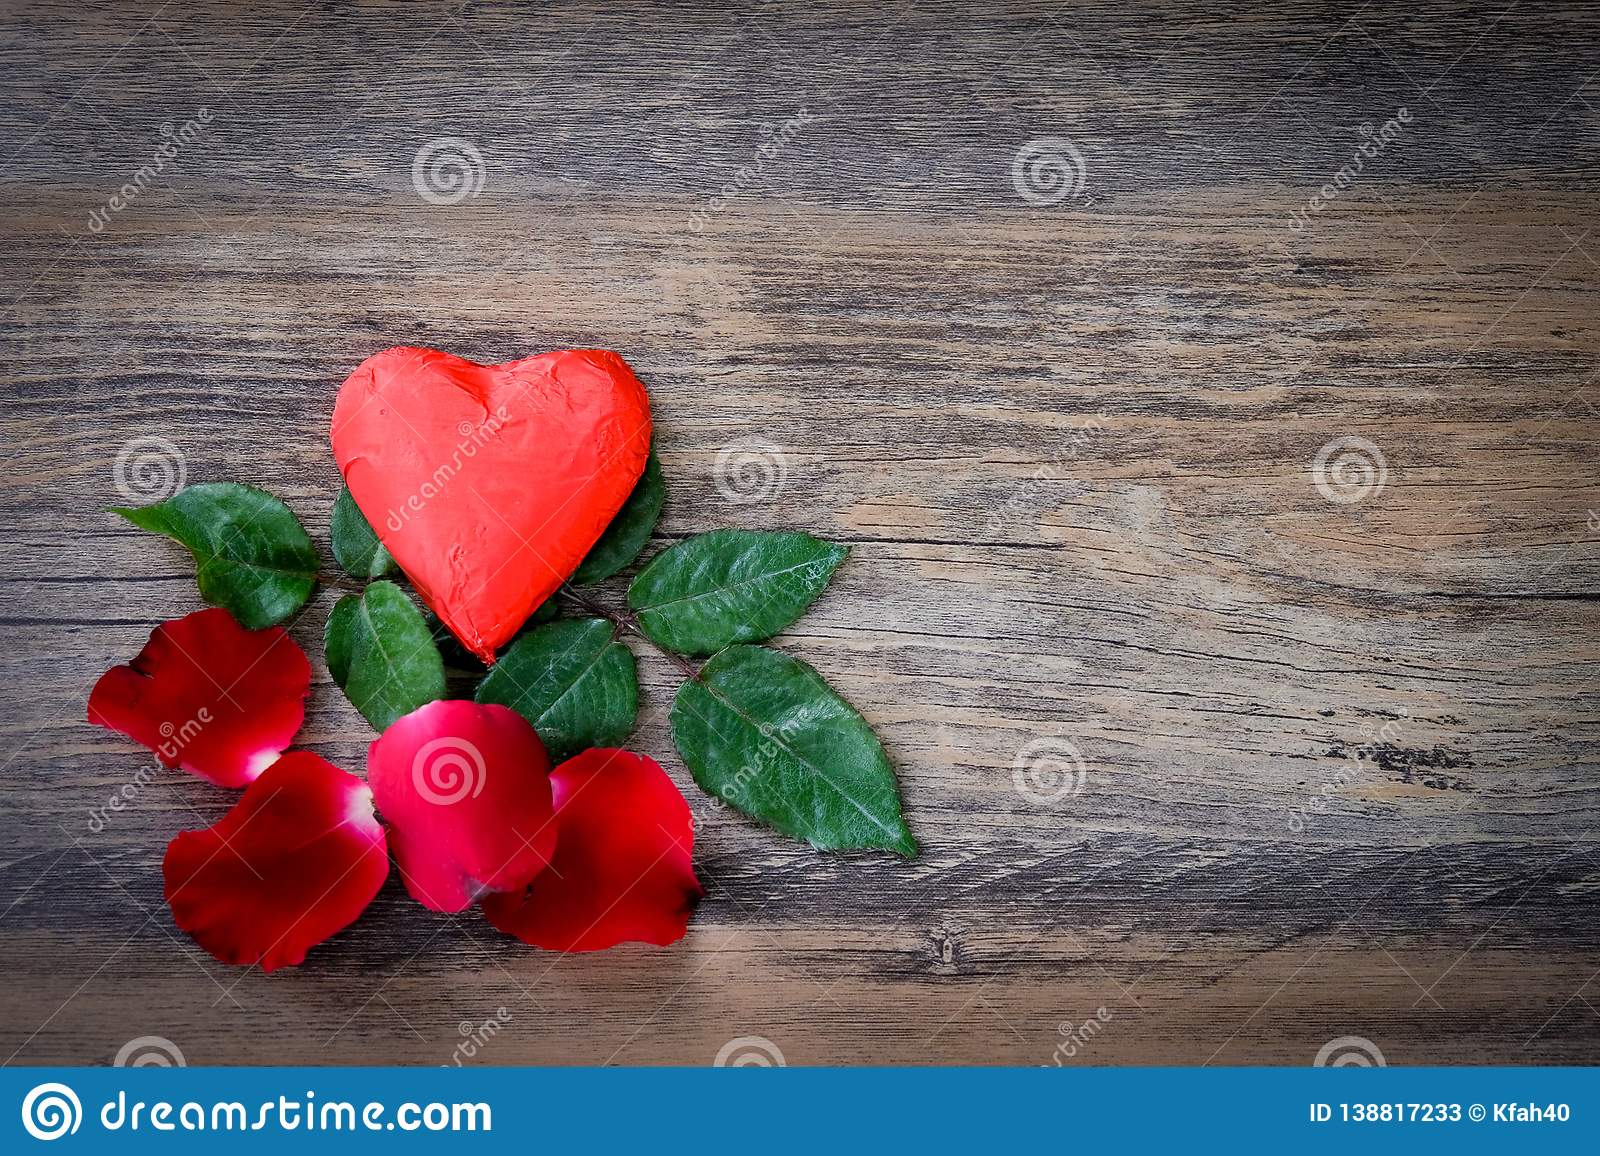 Heart shaped chocolate candy with red wrappings